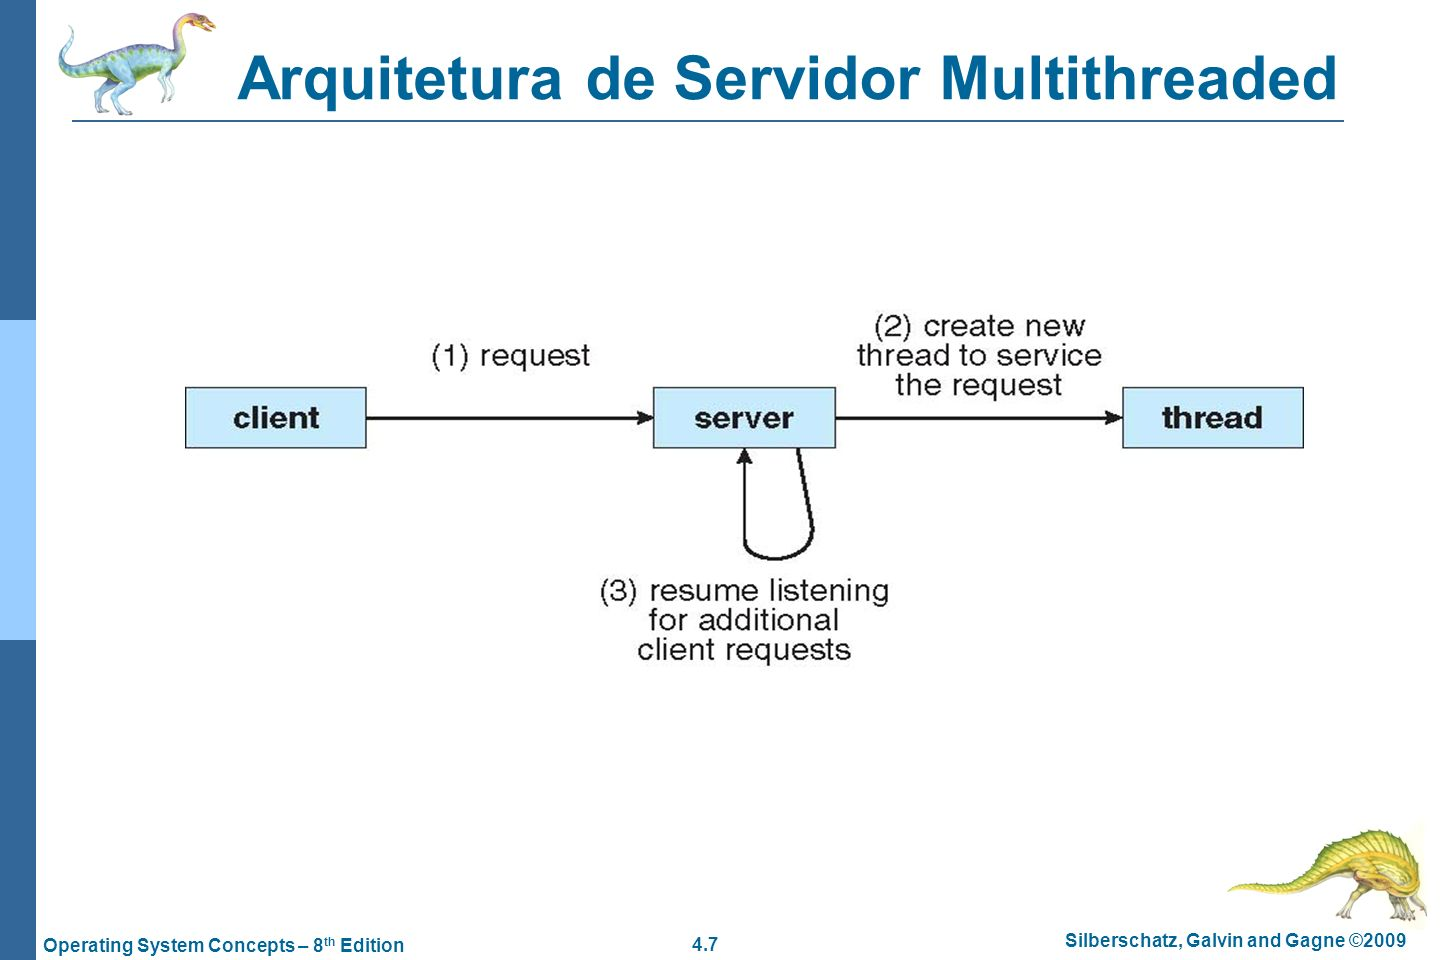 Arquitetura de Servidor Multithreaded